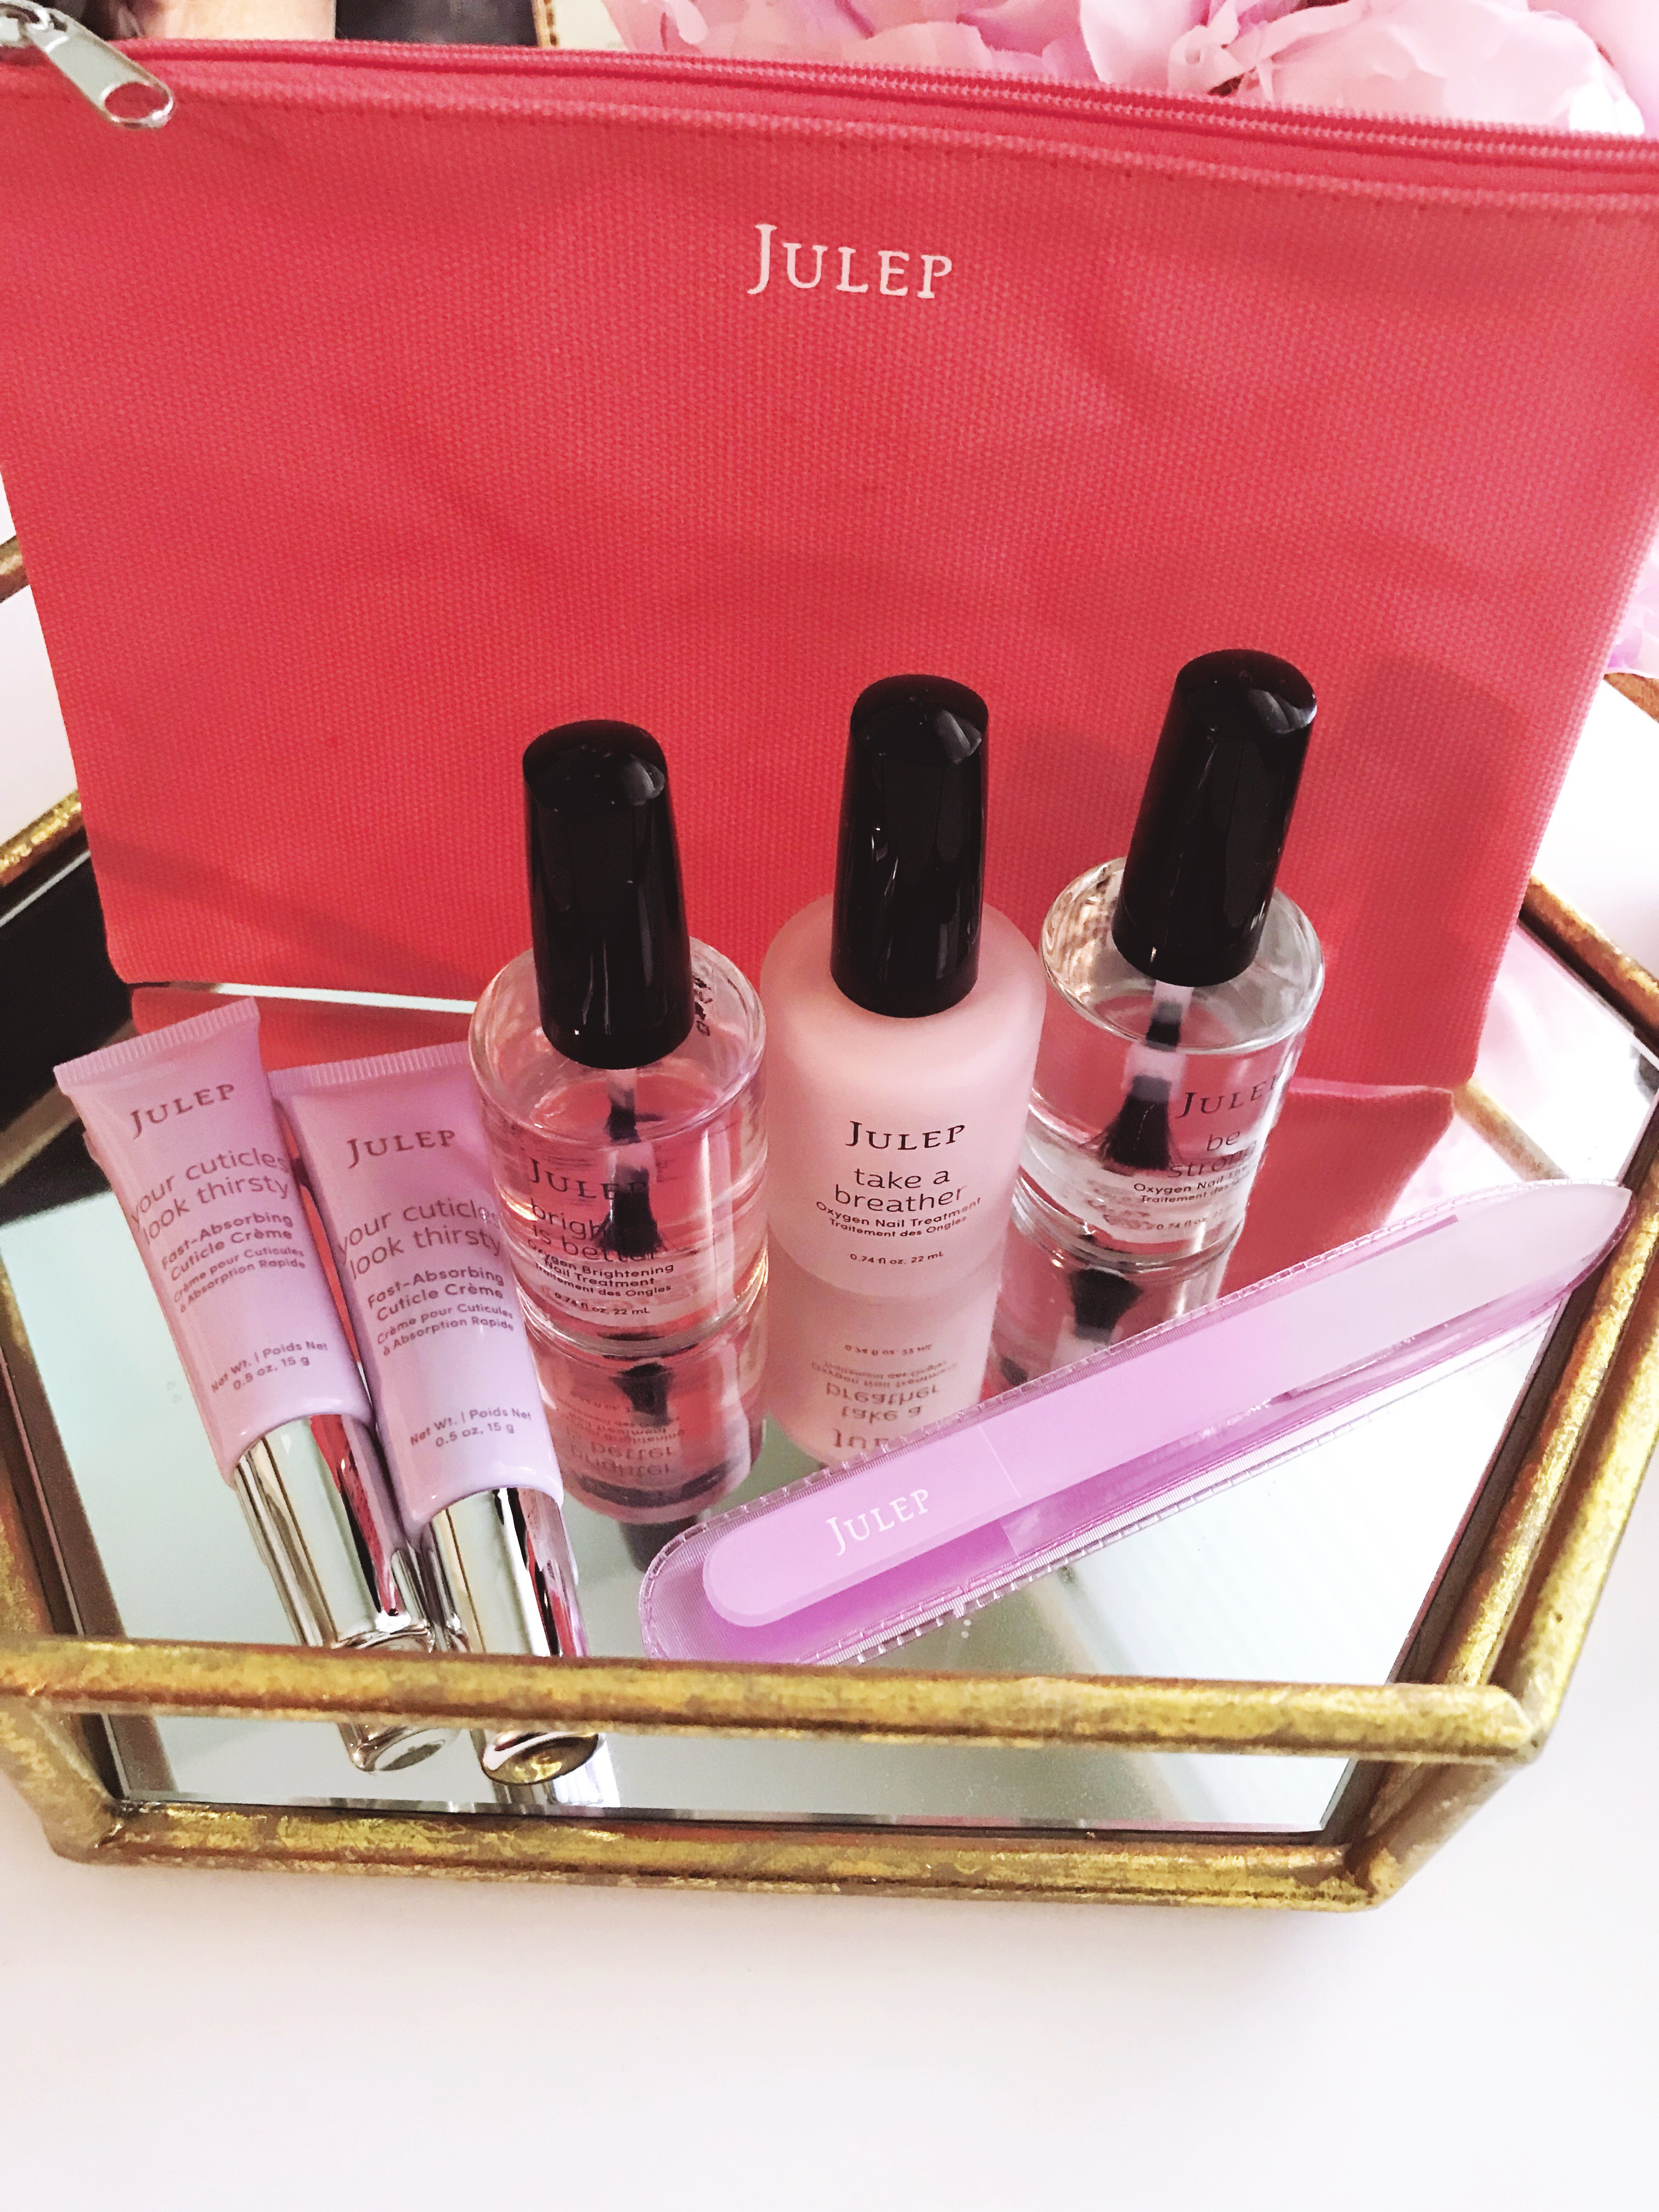 Julep 6-pc set is QVC Today's Special Value at only $39.98 but a value over $198.00!!